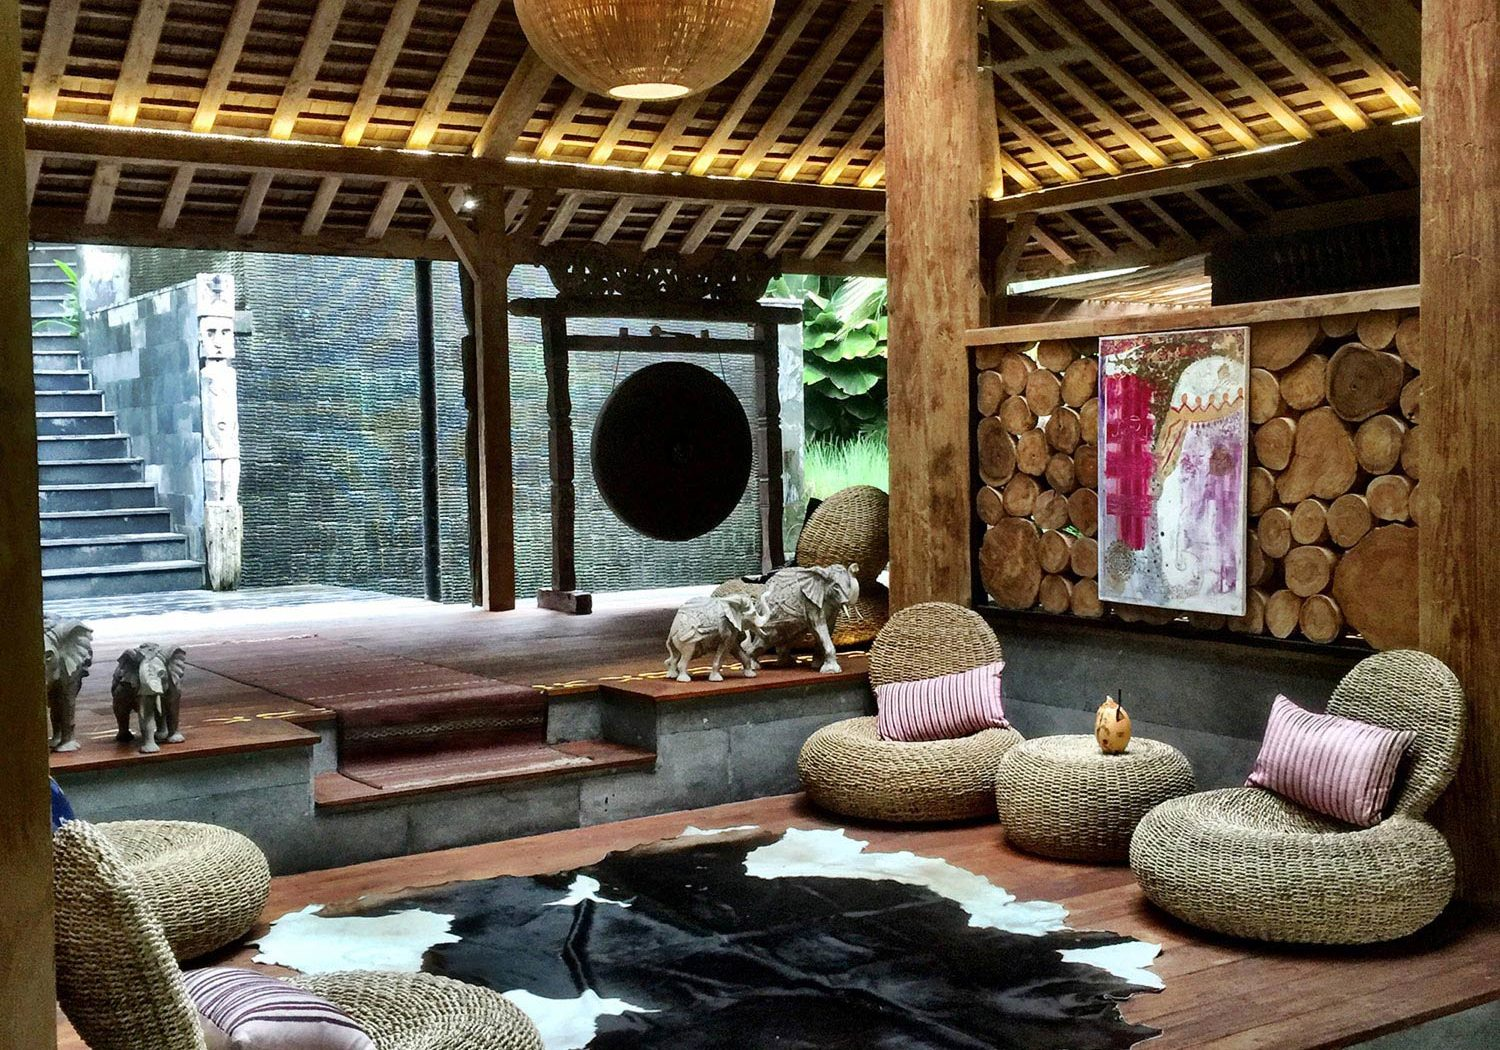 Bali Meditation Retreat - The Meditation Class, Blue Karma 3